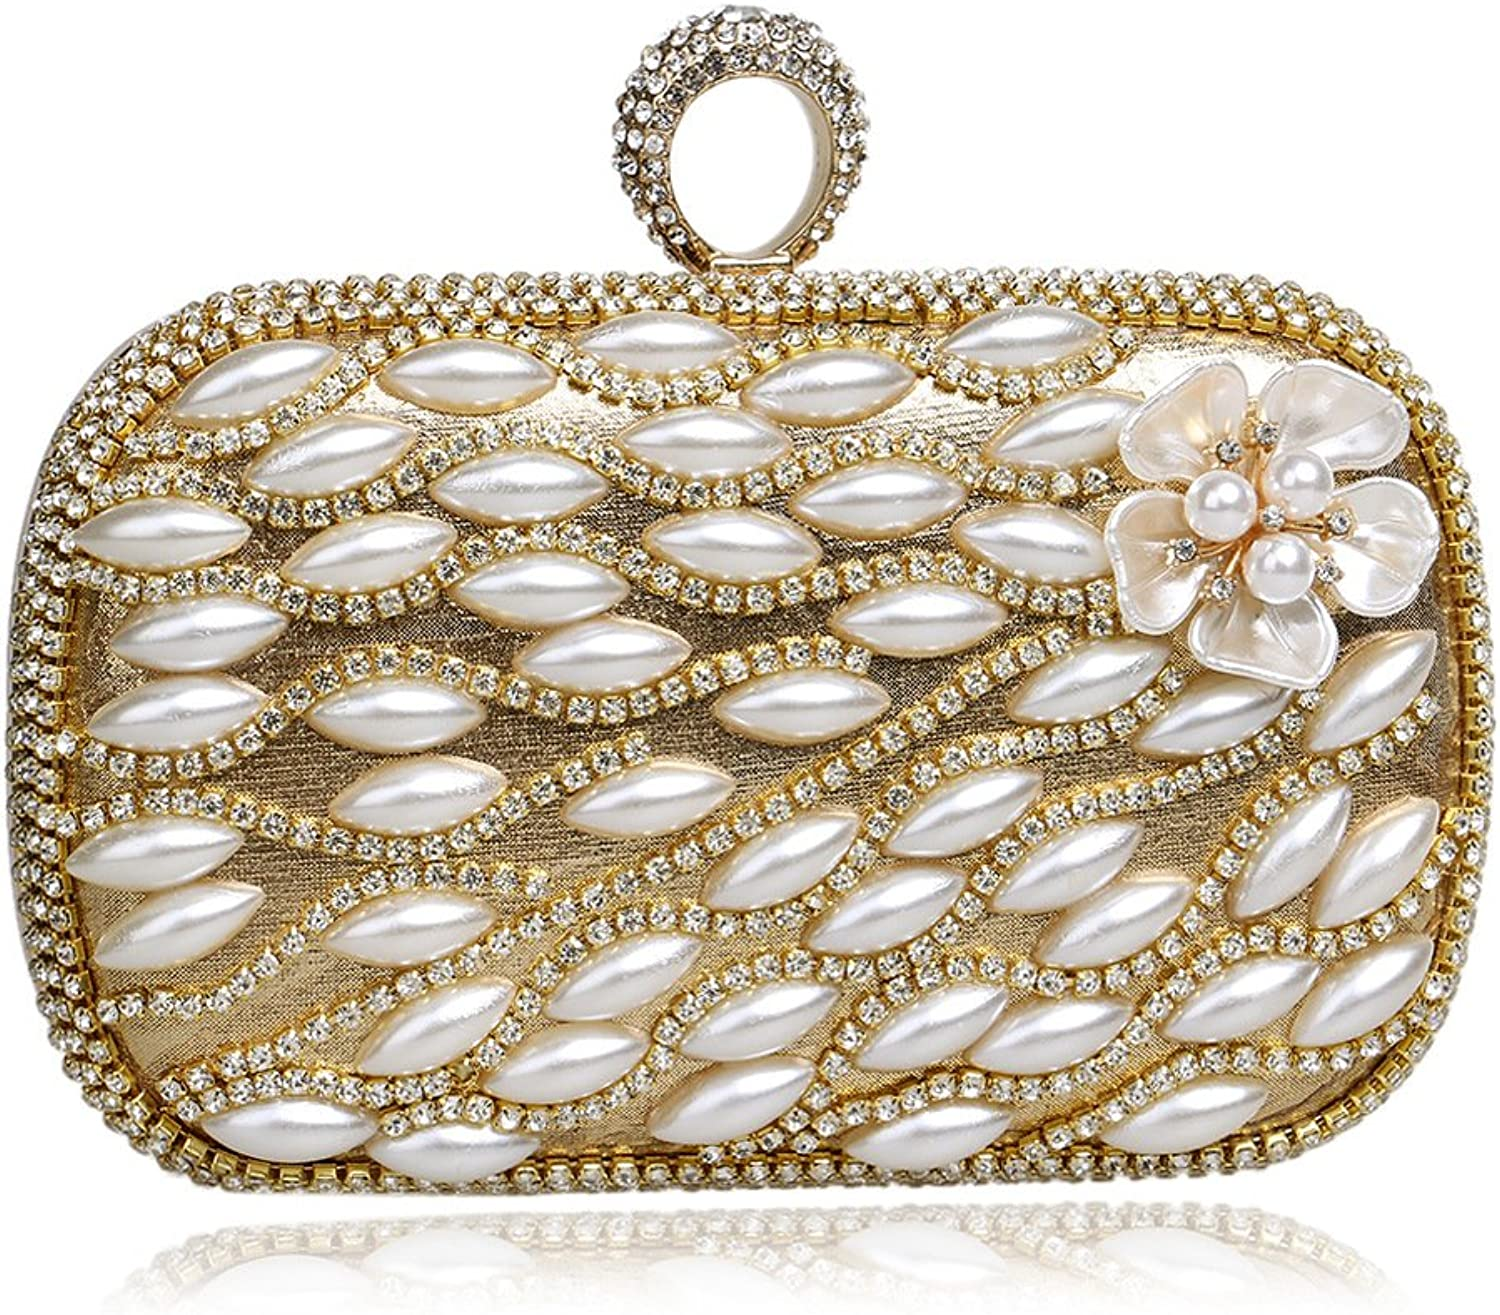 Flada Women Top Ring Crystal Bead Flos Evening Clutch Bags